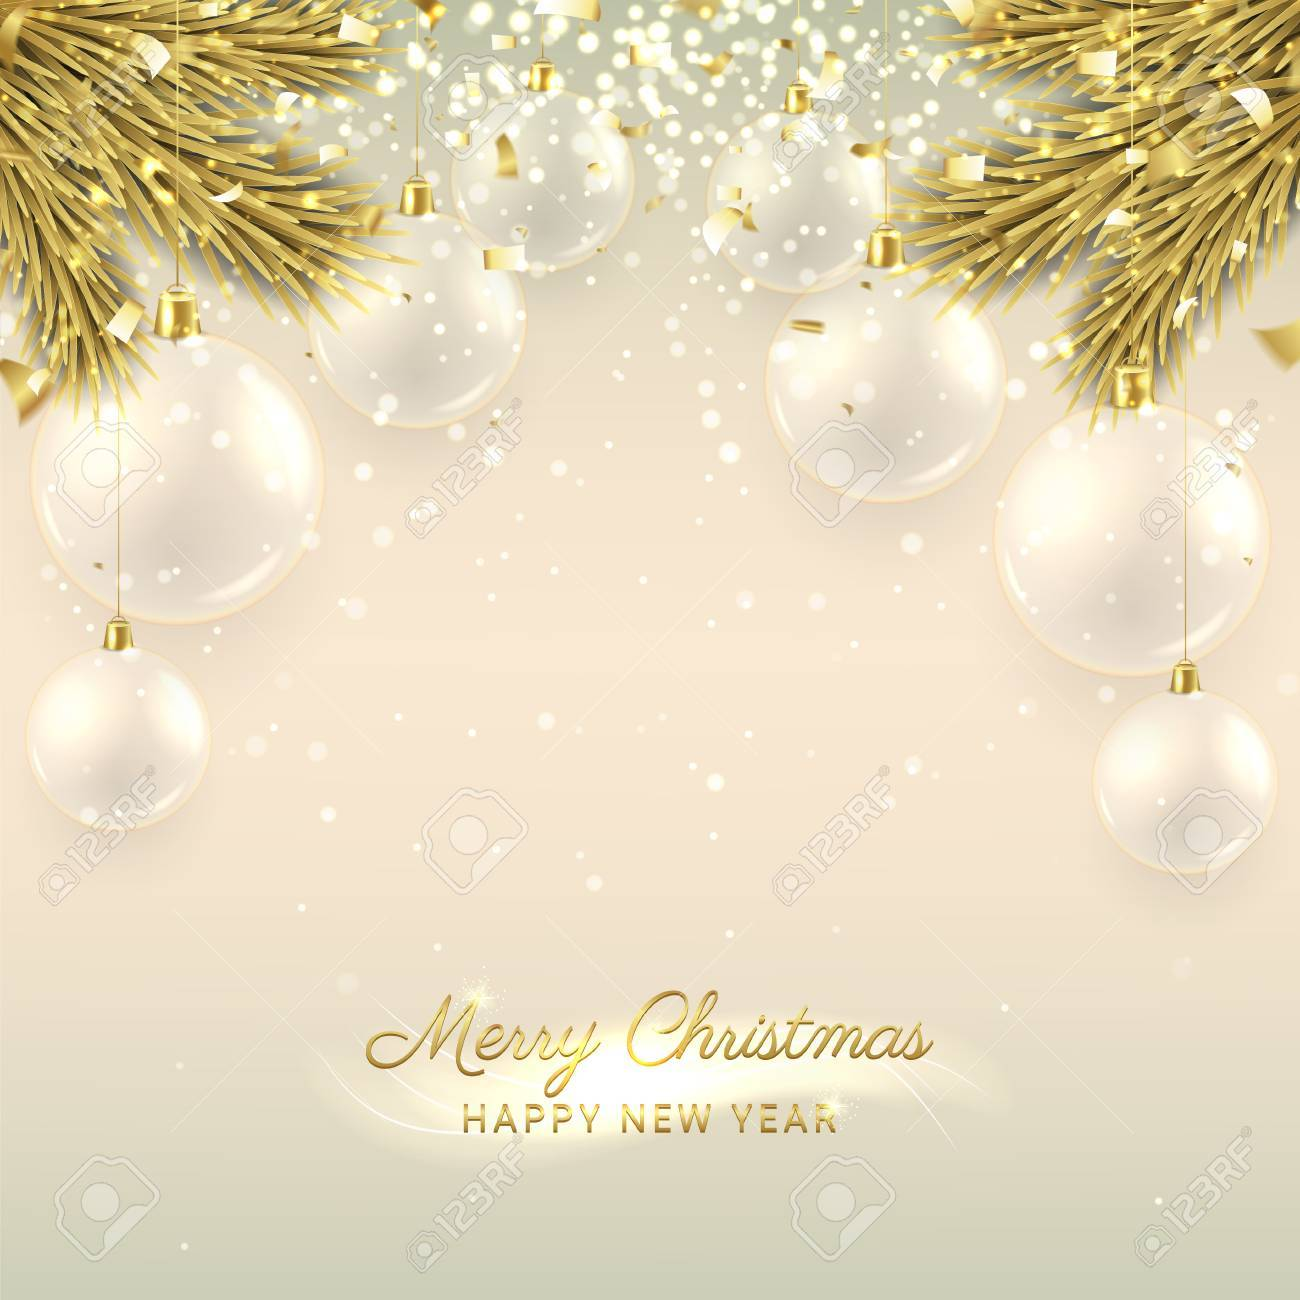 elegant illustration with fir tree branches happy new year background with golden confetti and